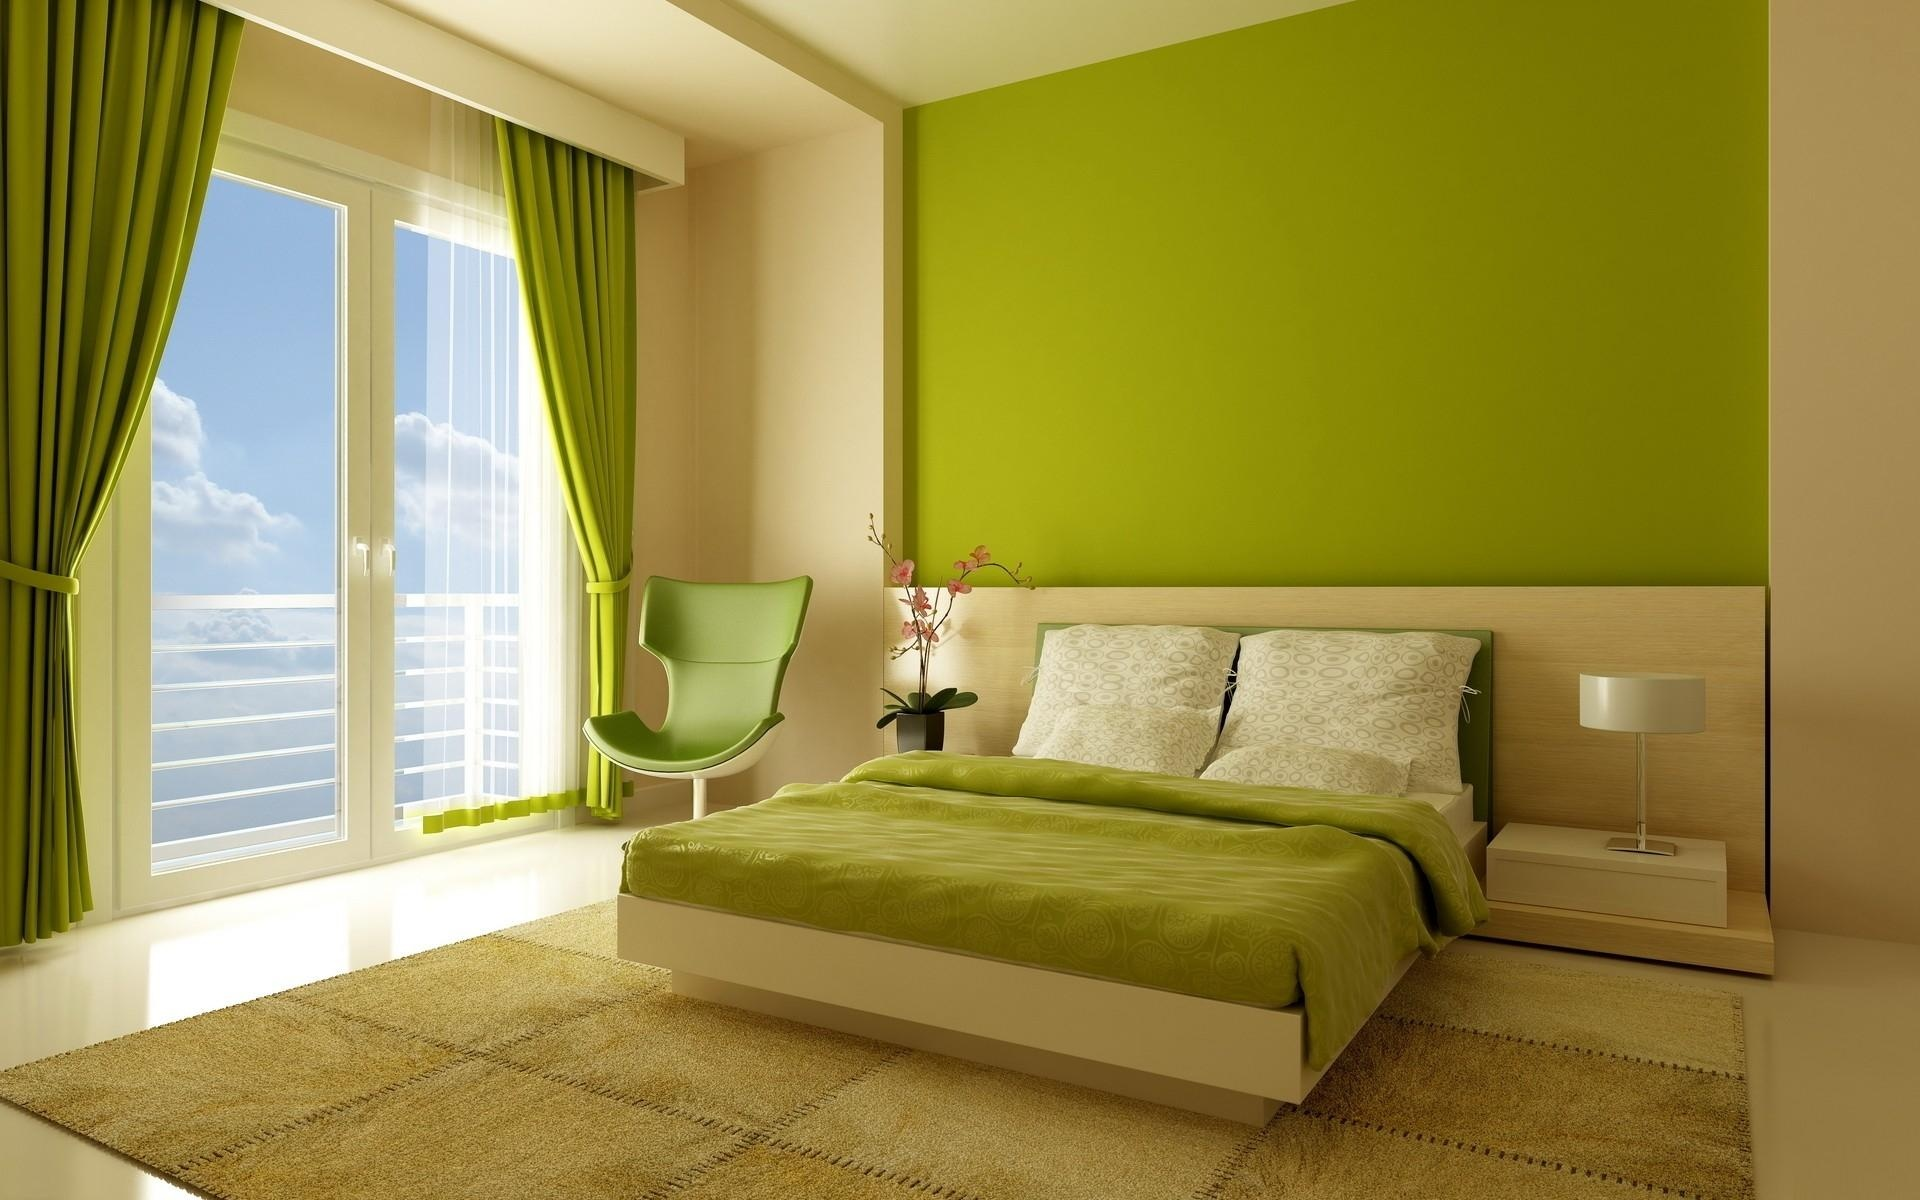 Bedroom Color Ideas – the Nuance of Choosing Tone | HomesFeed